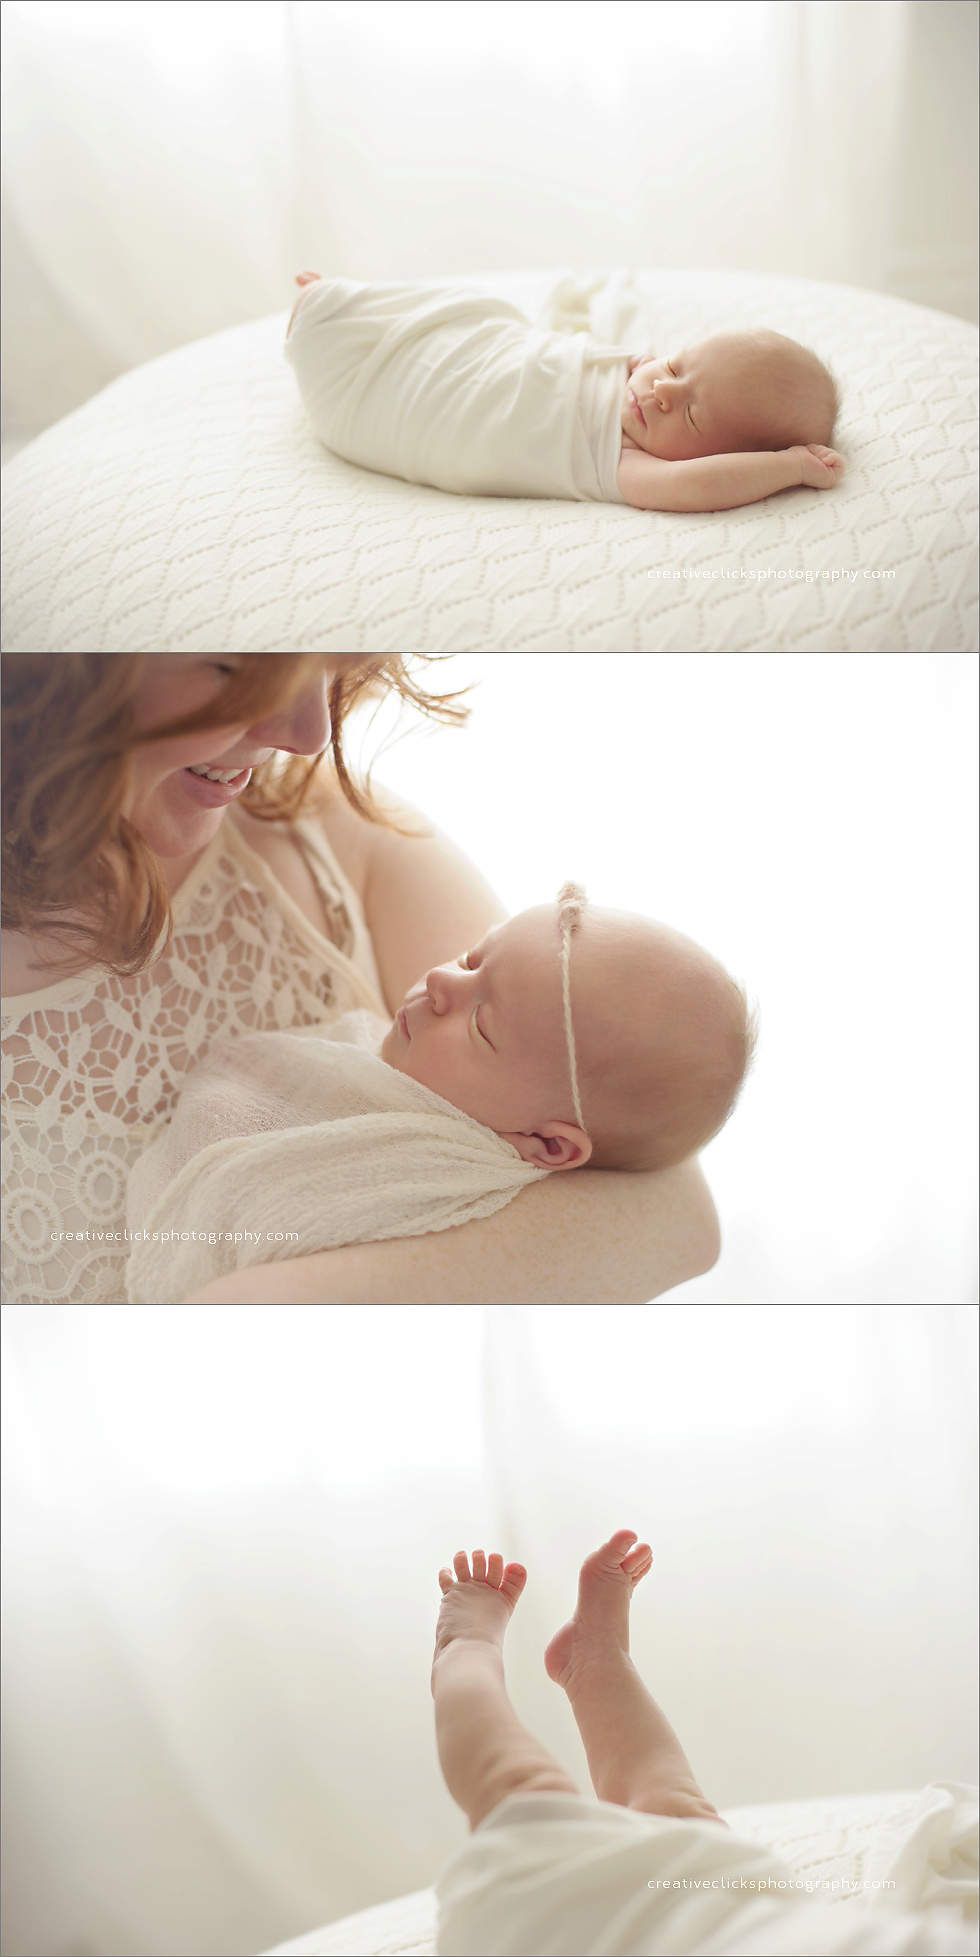 michaela-niagara-newborn-photographer_0022